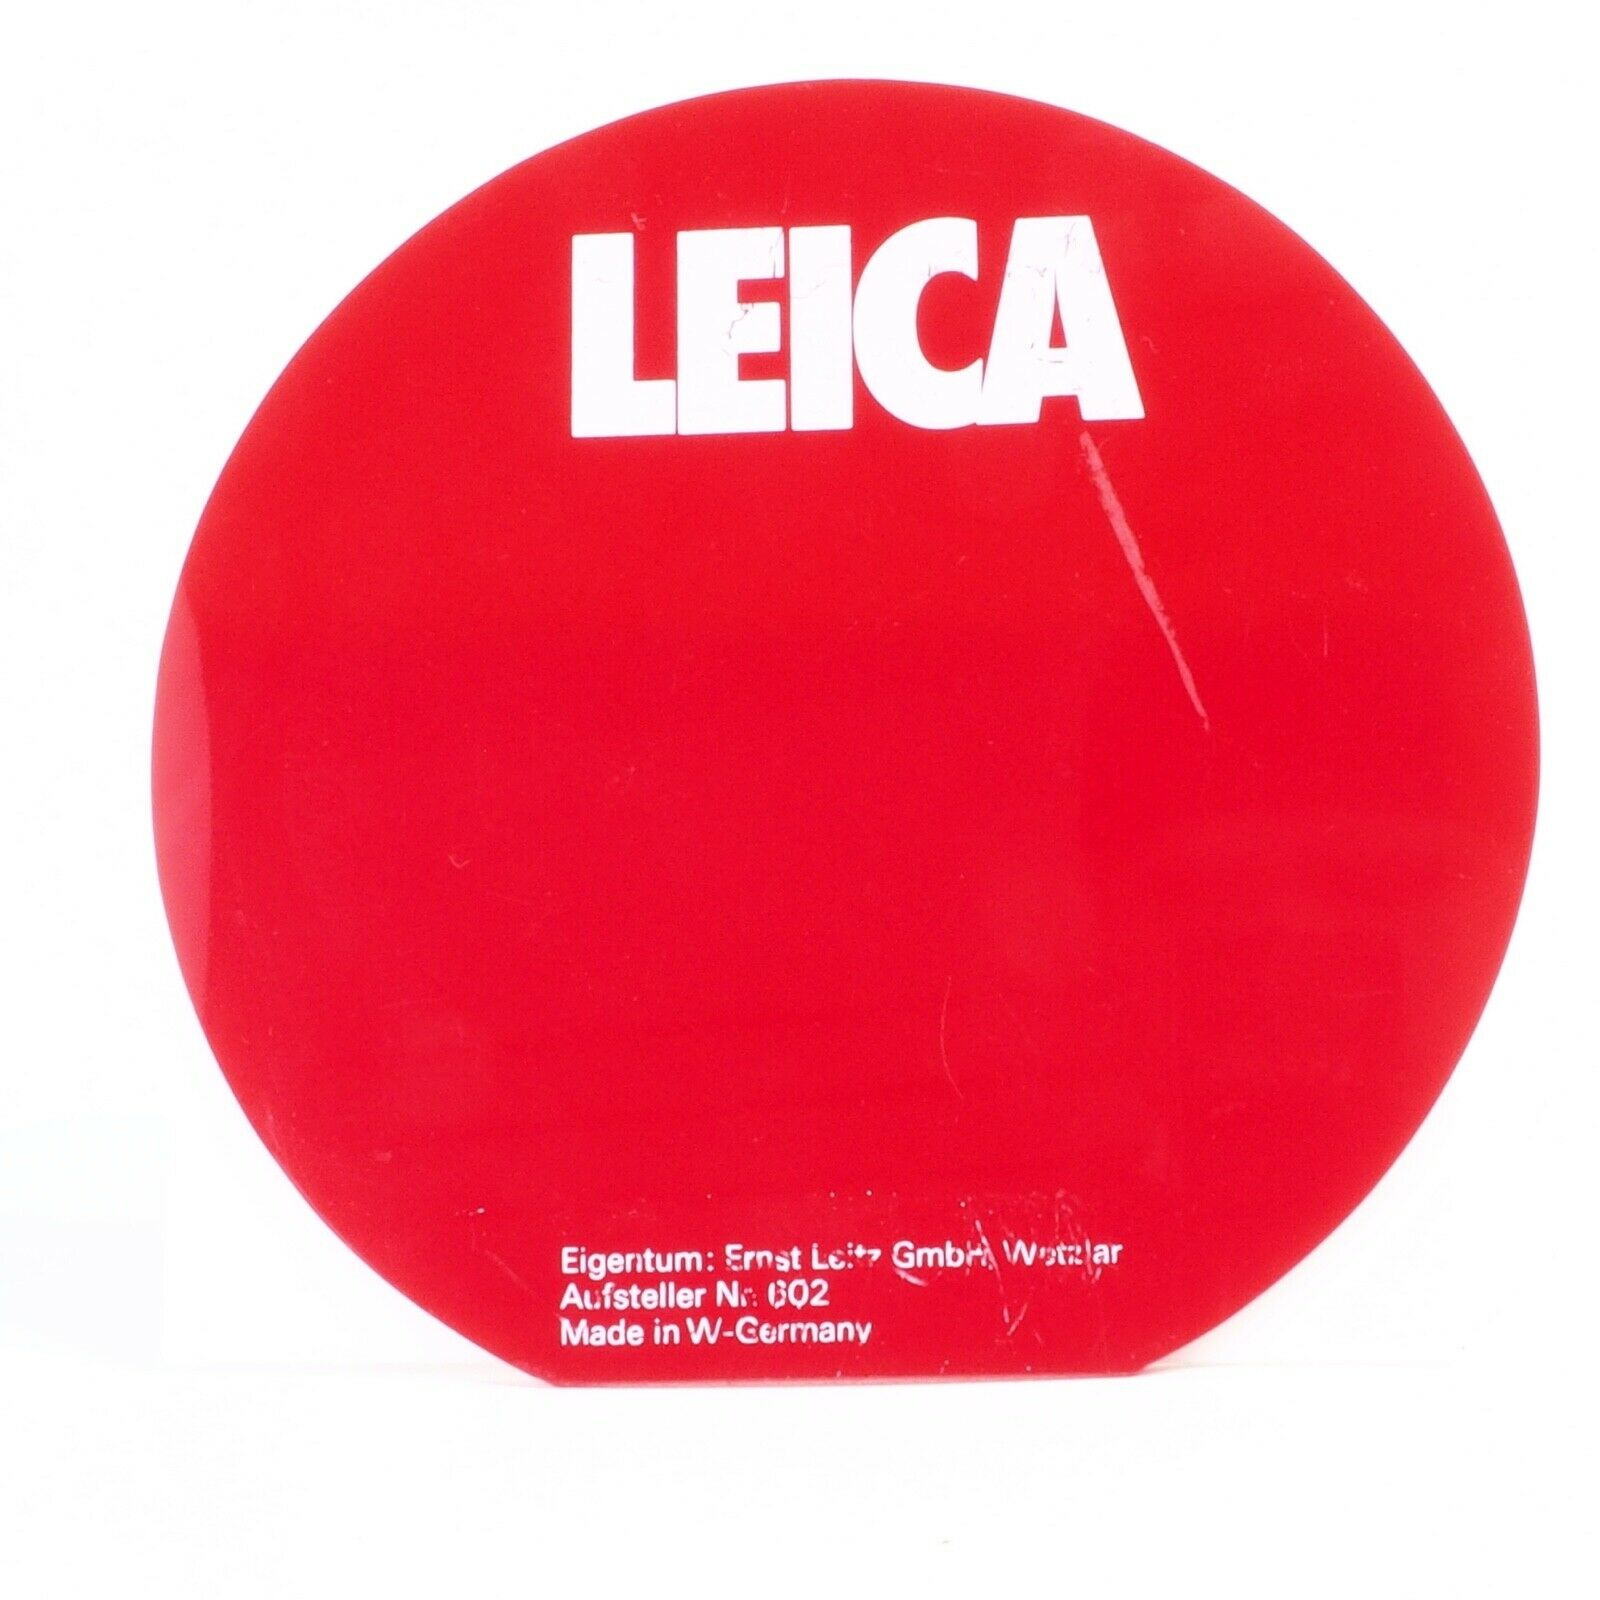 ^ Rare LEICA Red and White Display Backdrop [Missing Bottom Half - West Germany]